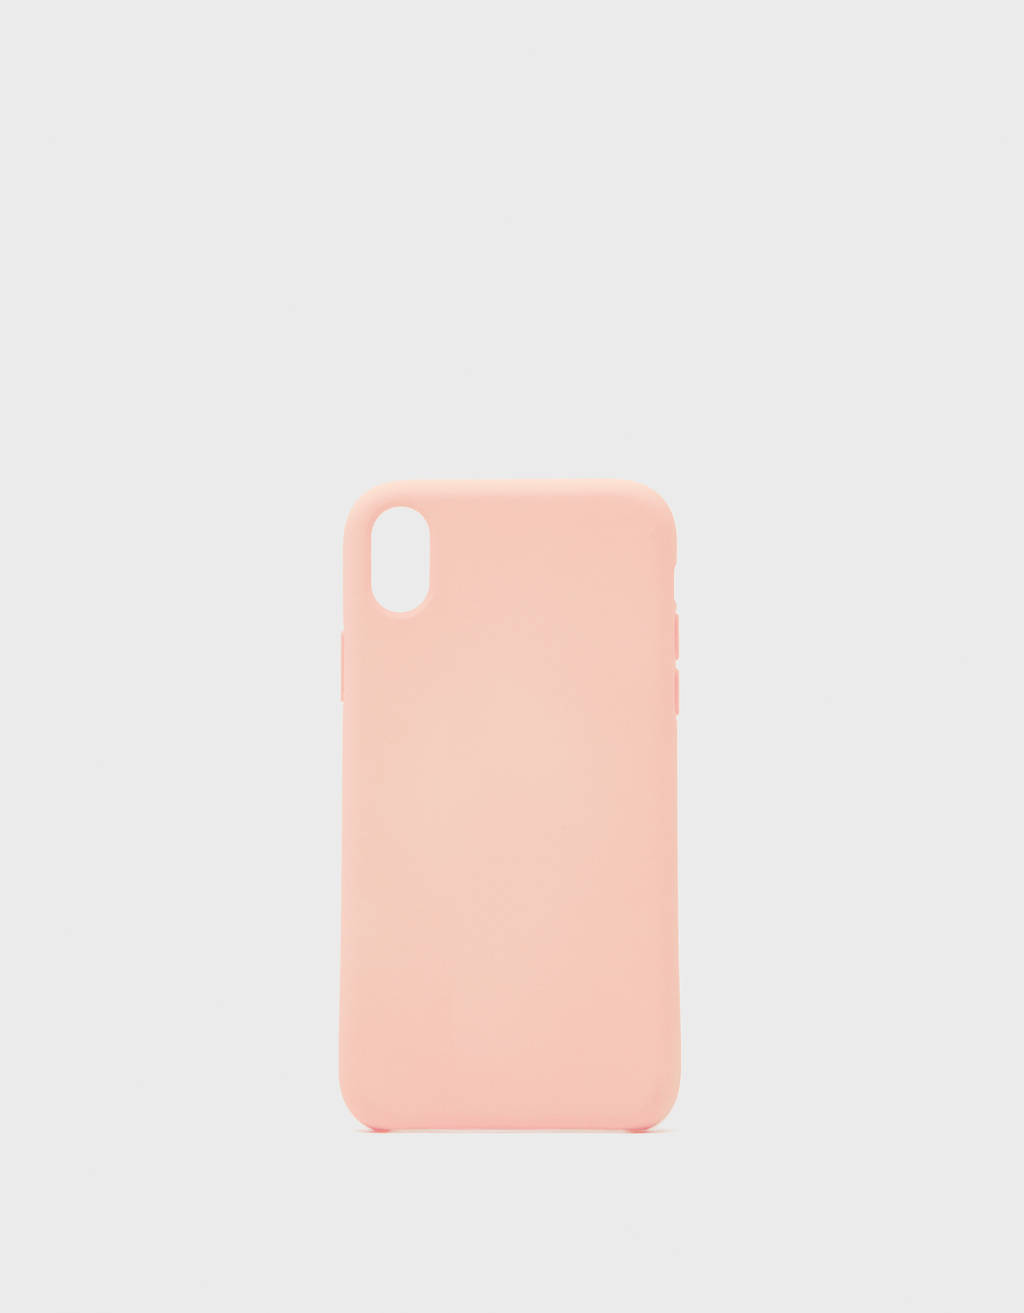 Monochrome iPhone XR case